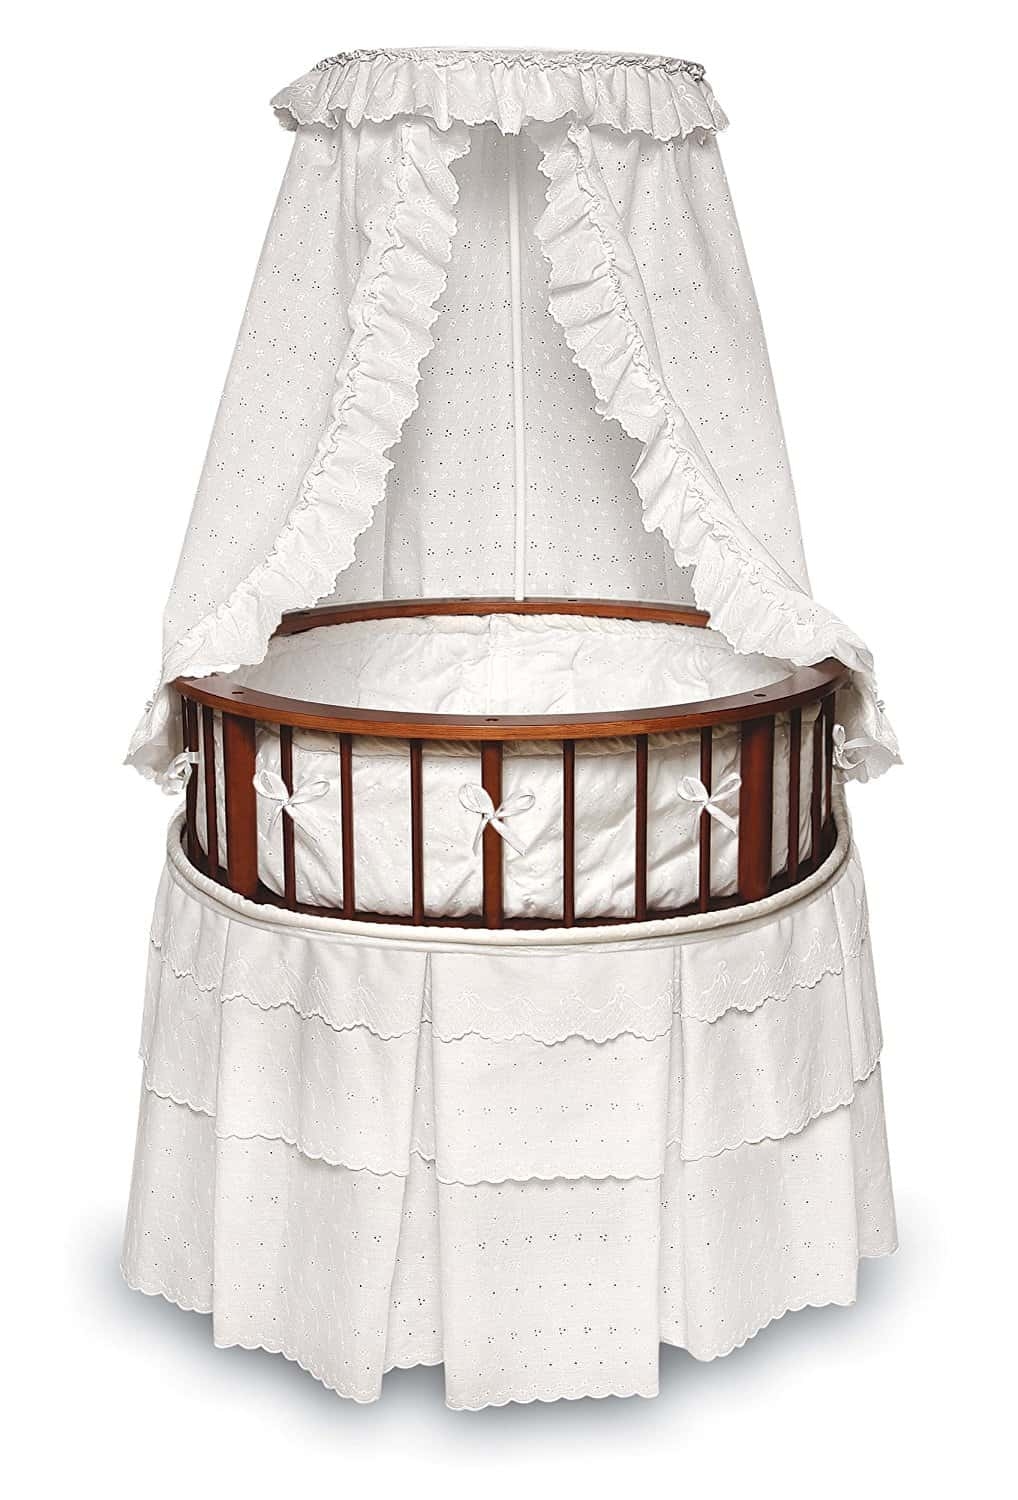 Badger Basket Elegance Round Baby Bassinet